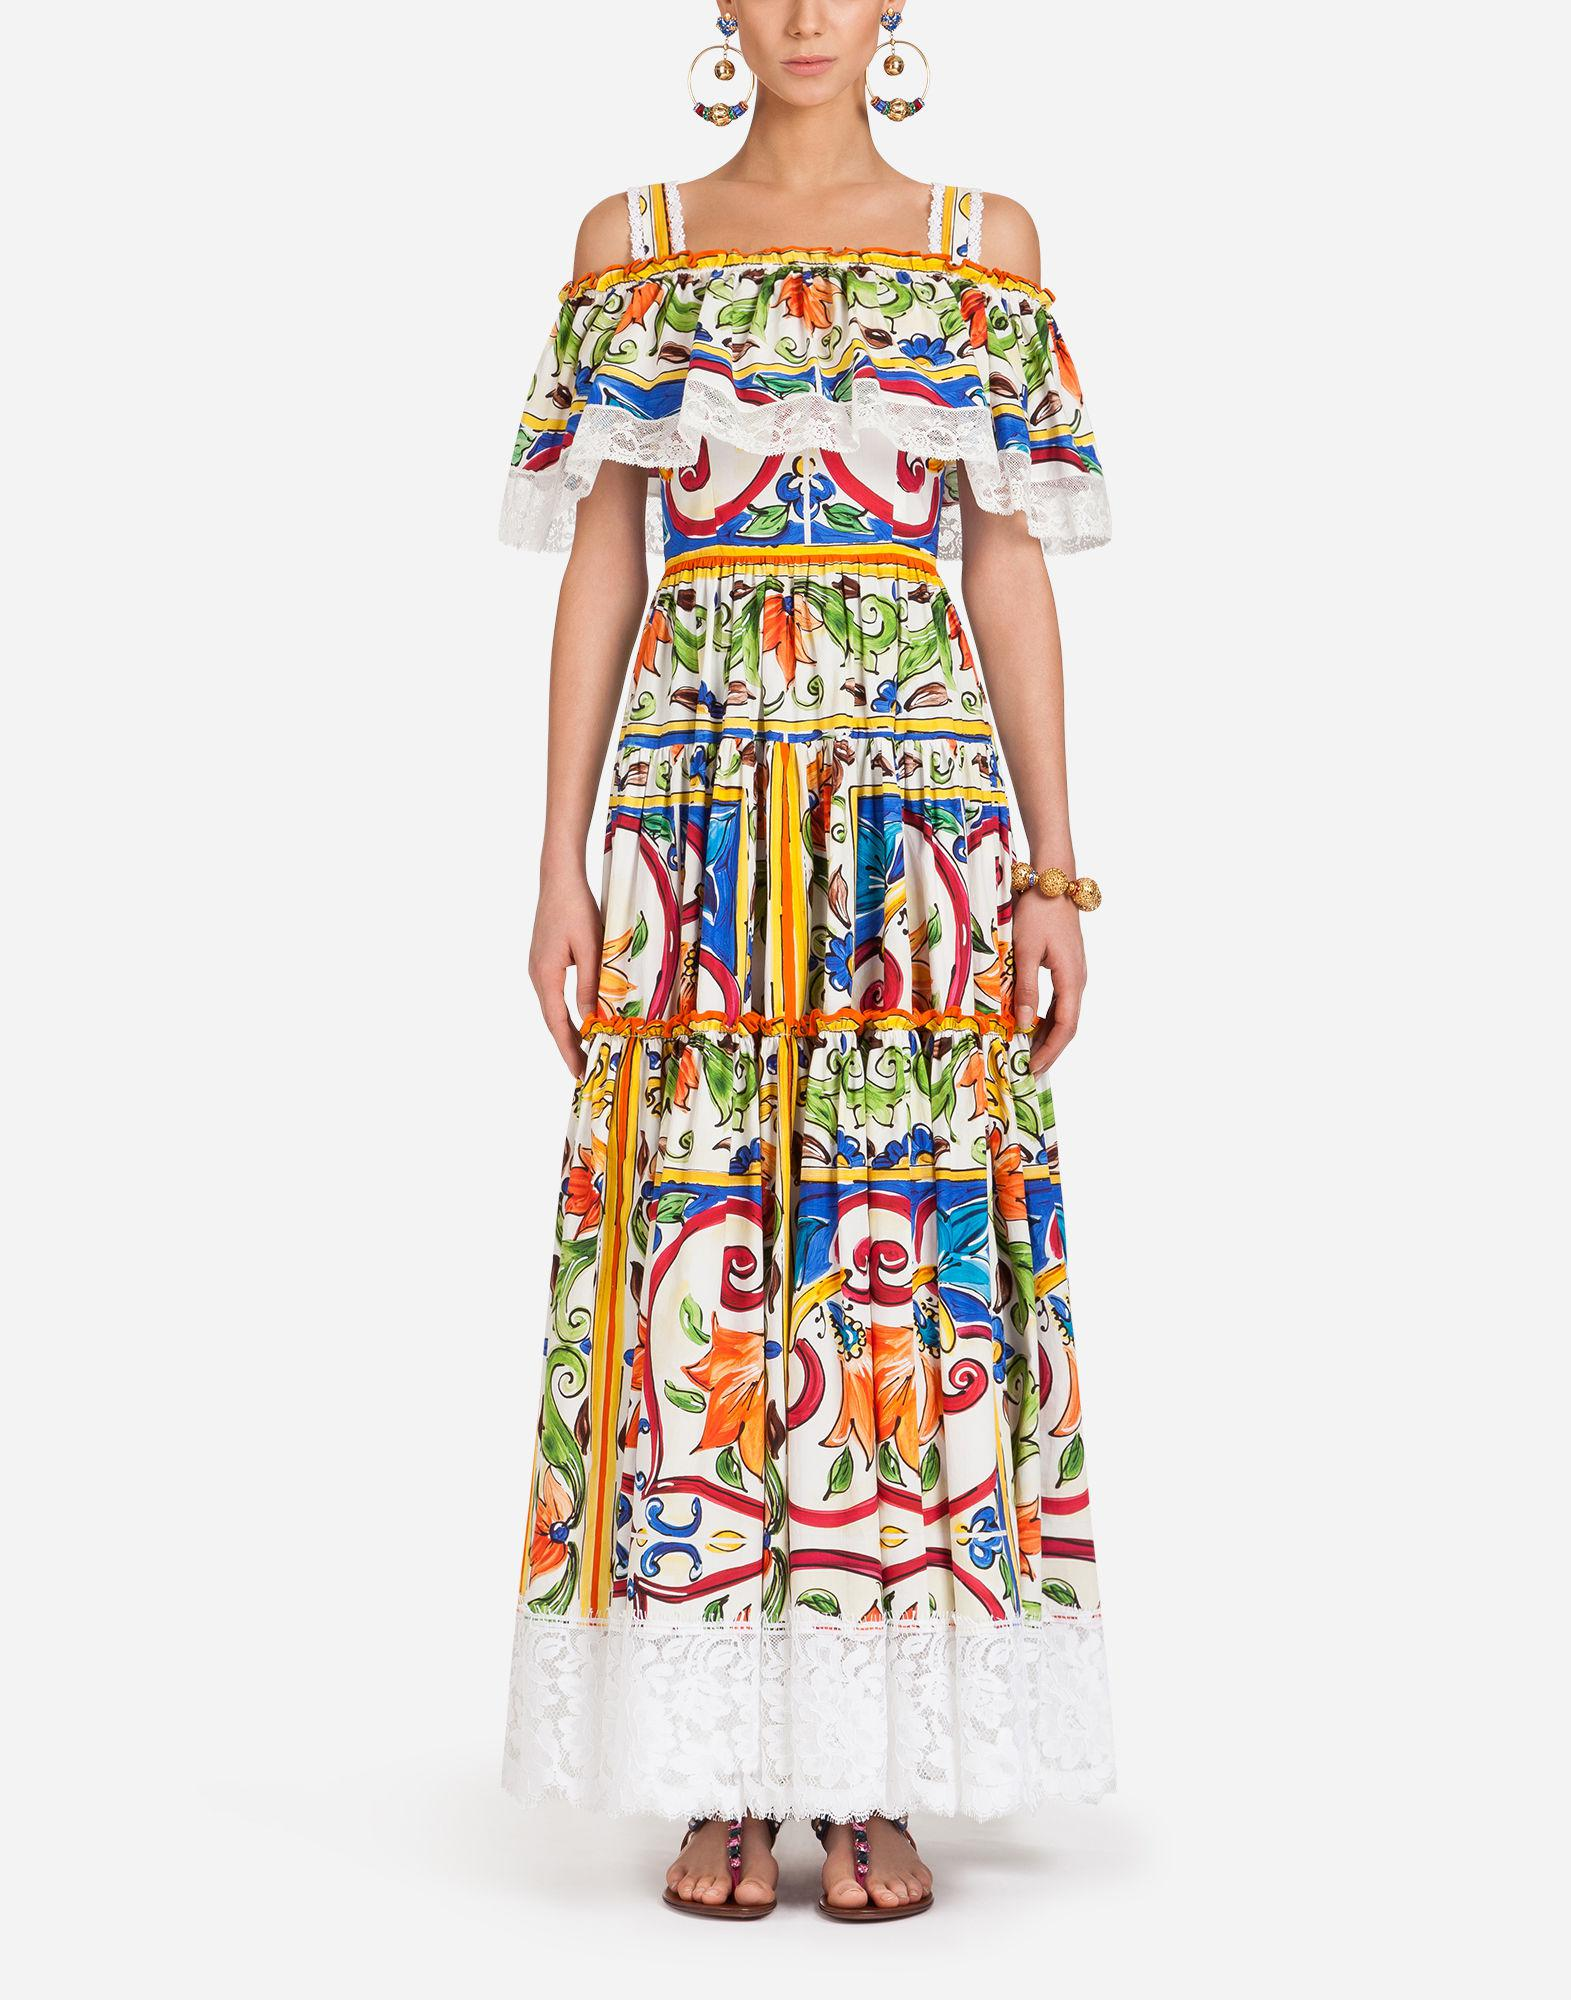 046e30cc Dolce & Gabbana Majolica Print Cotton Long Dress - Lyst